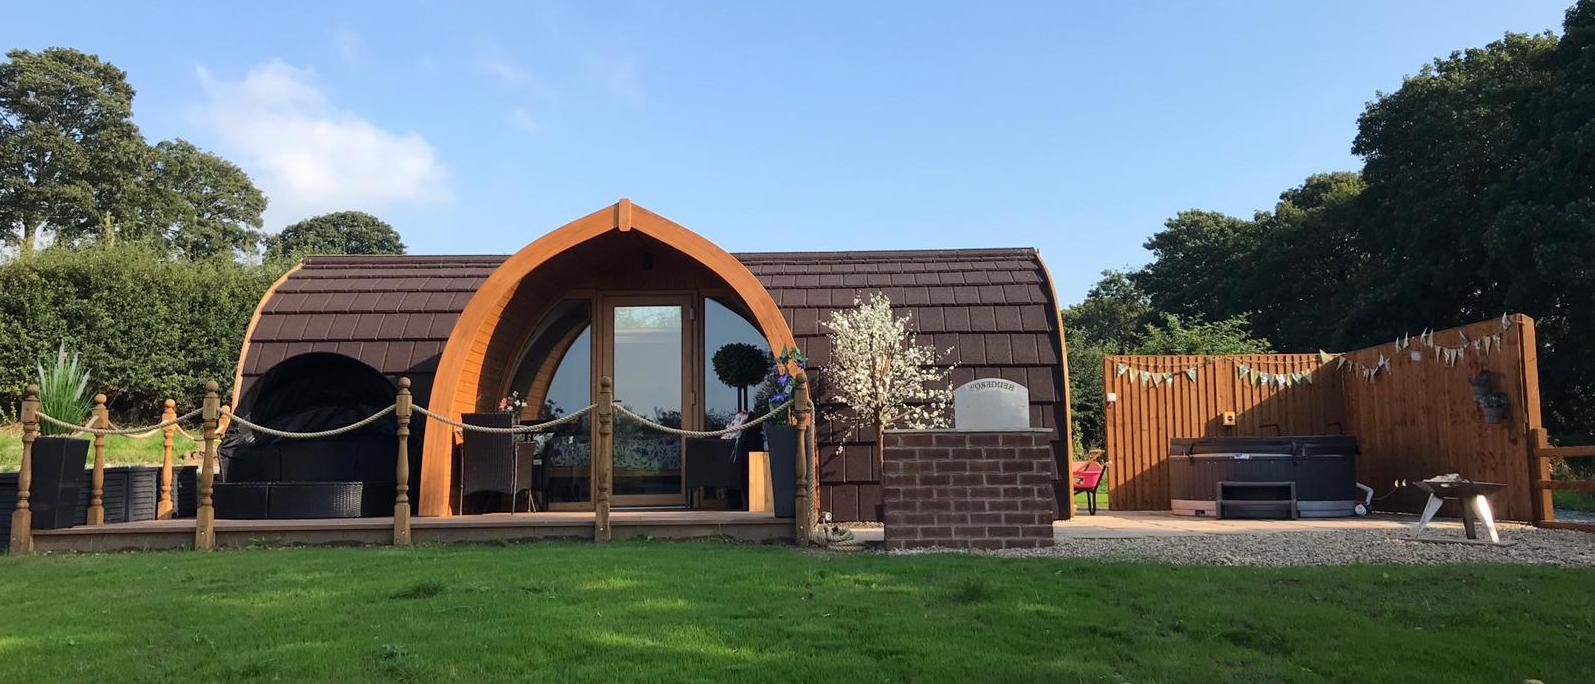 Glamping in Lancashire holidays at Cool Places